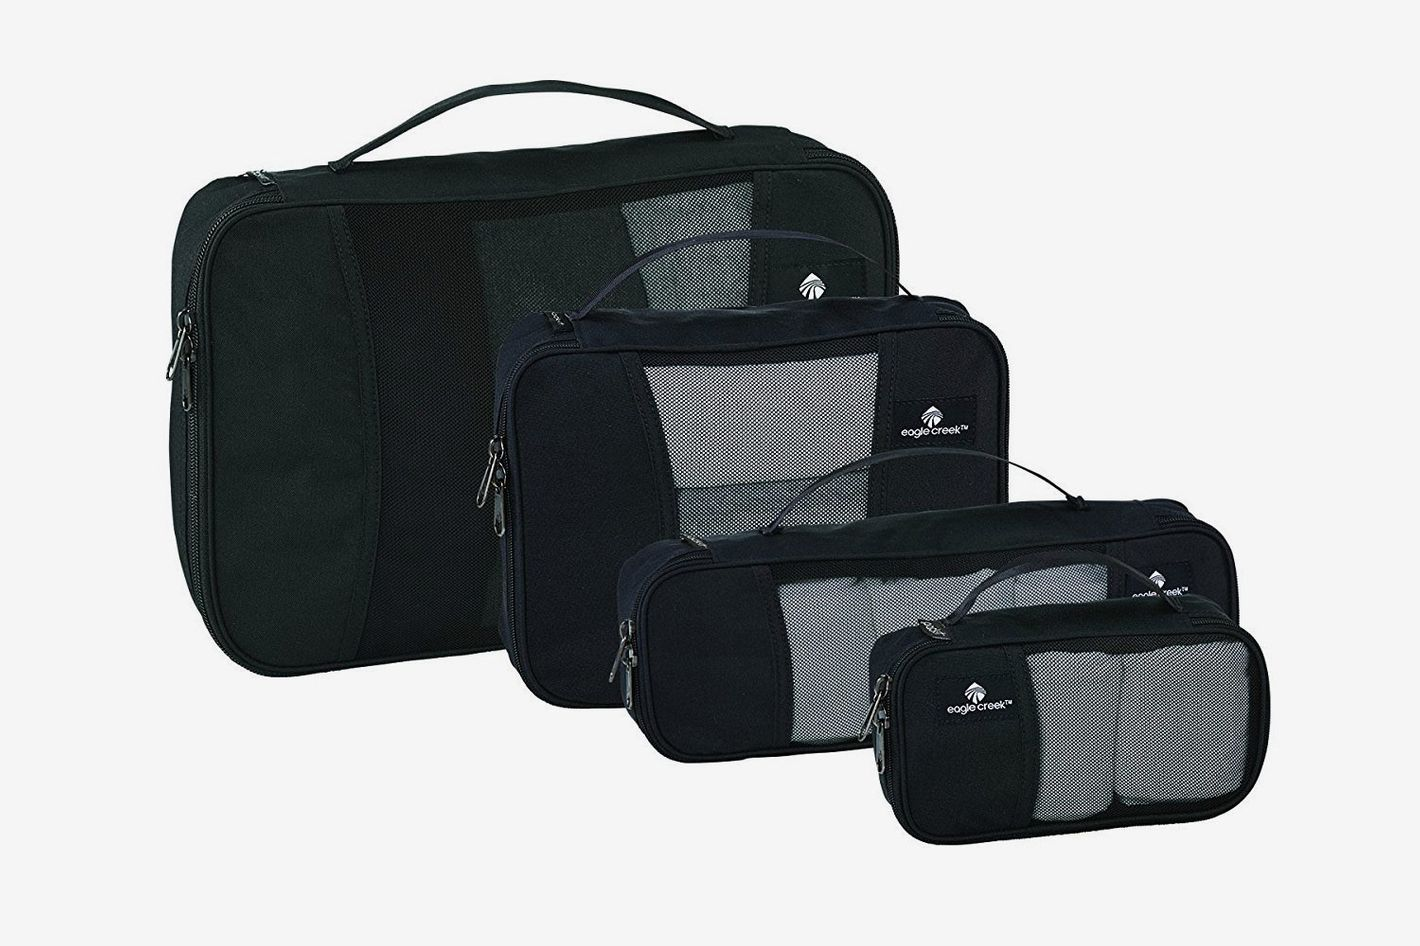 898aeef66602 Buy. Eagle Creek Pack-It Cube Set